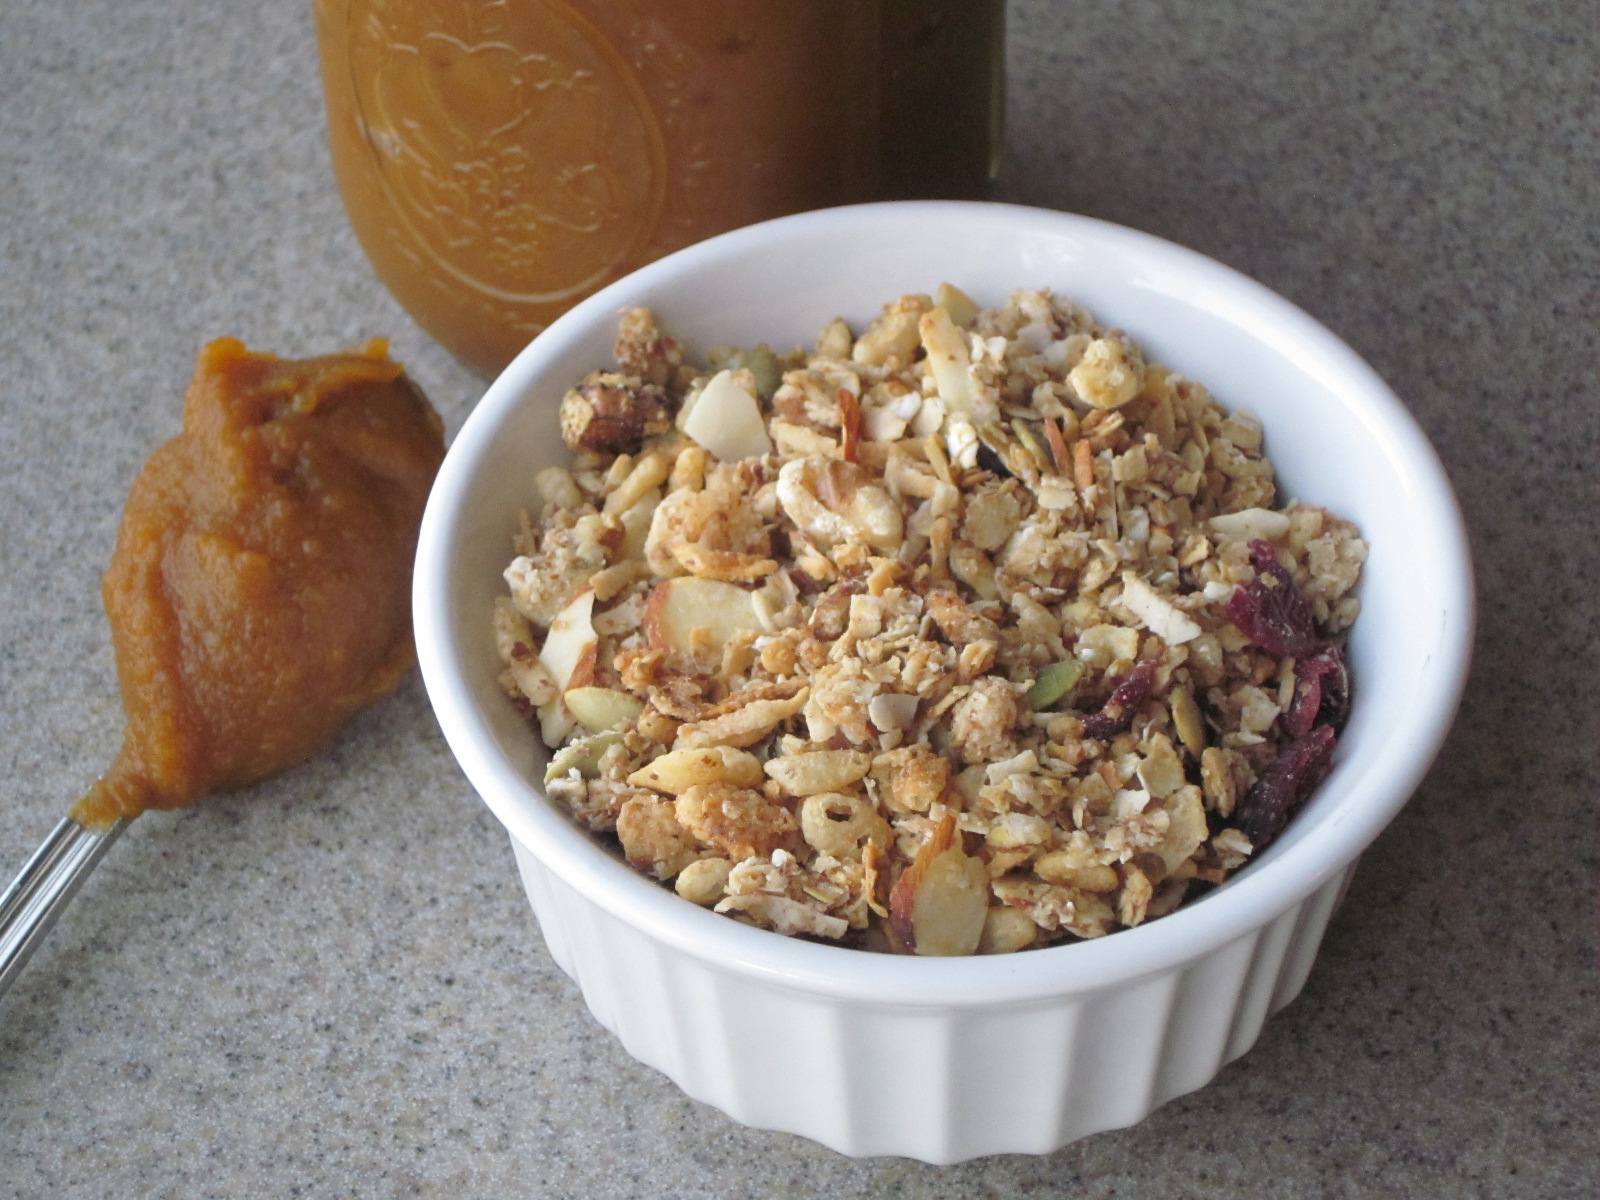 Sweet Luvin' In The Kitchen: Pepita Granola and Pumpkin Butter